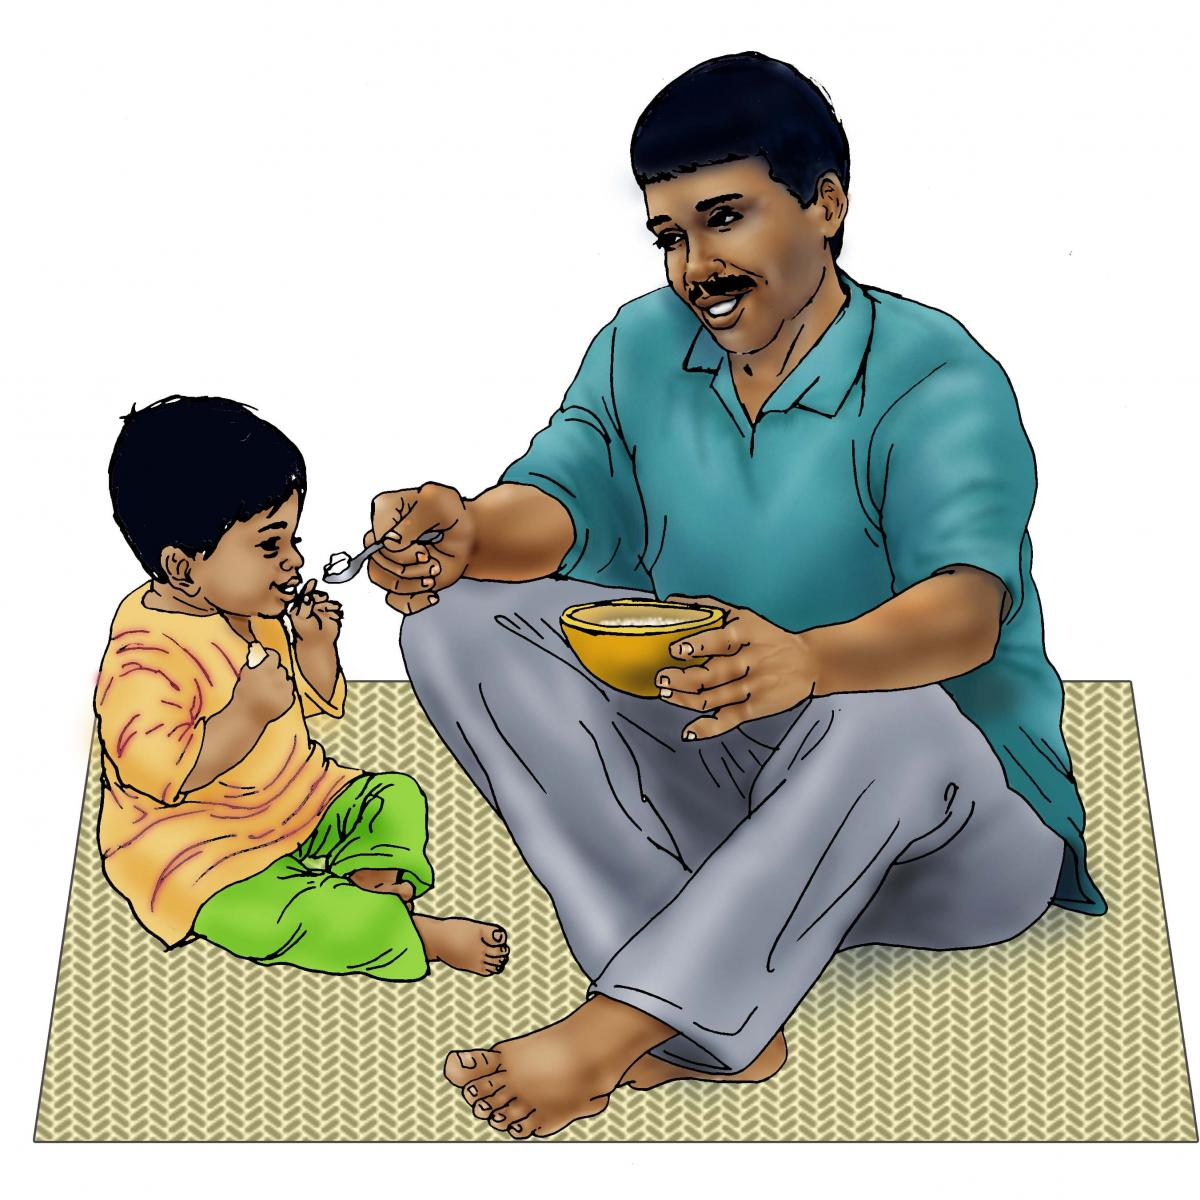 Complementary feeding - Father feeding child 12-24 mo - 01 - India